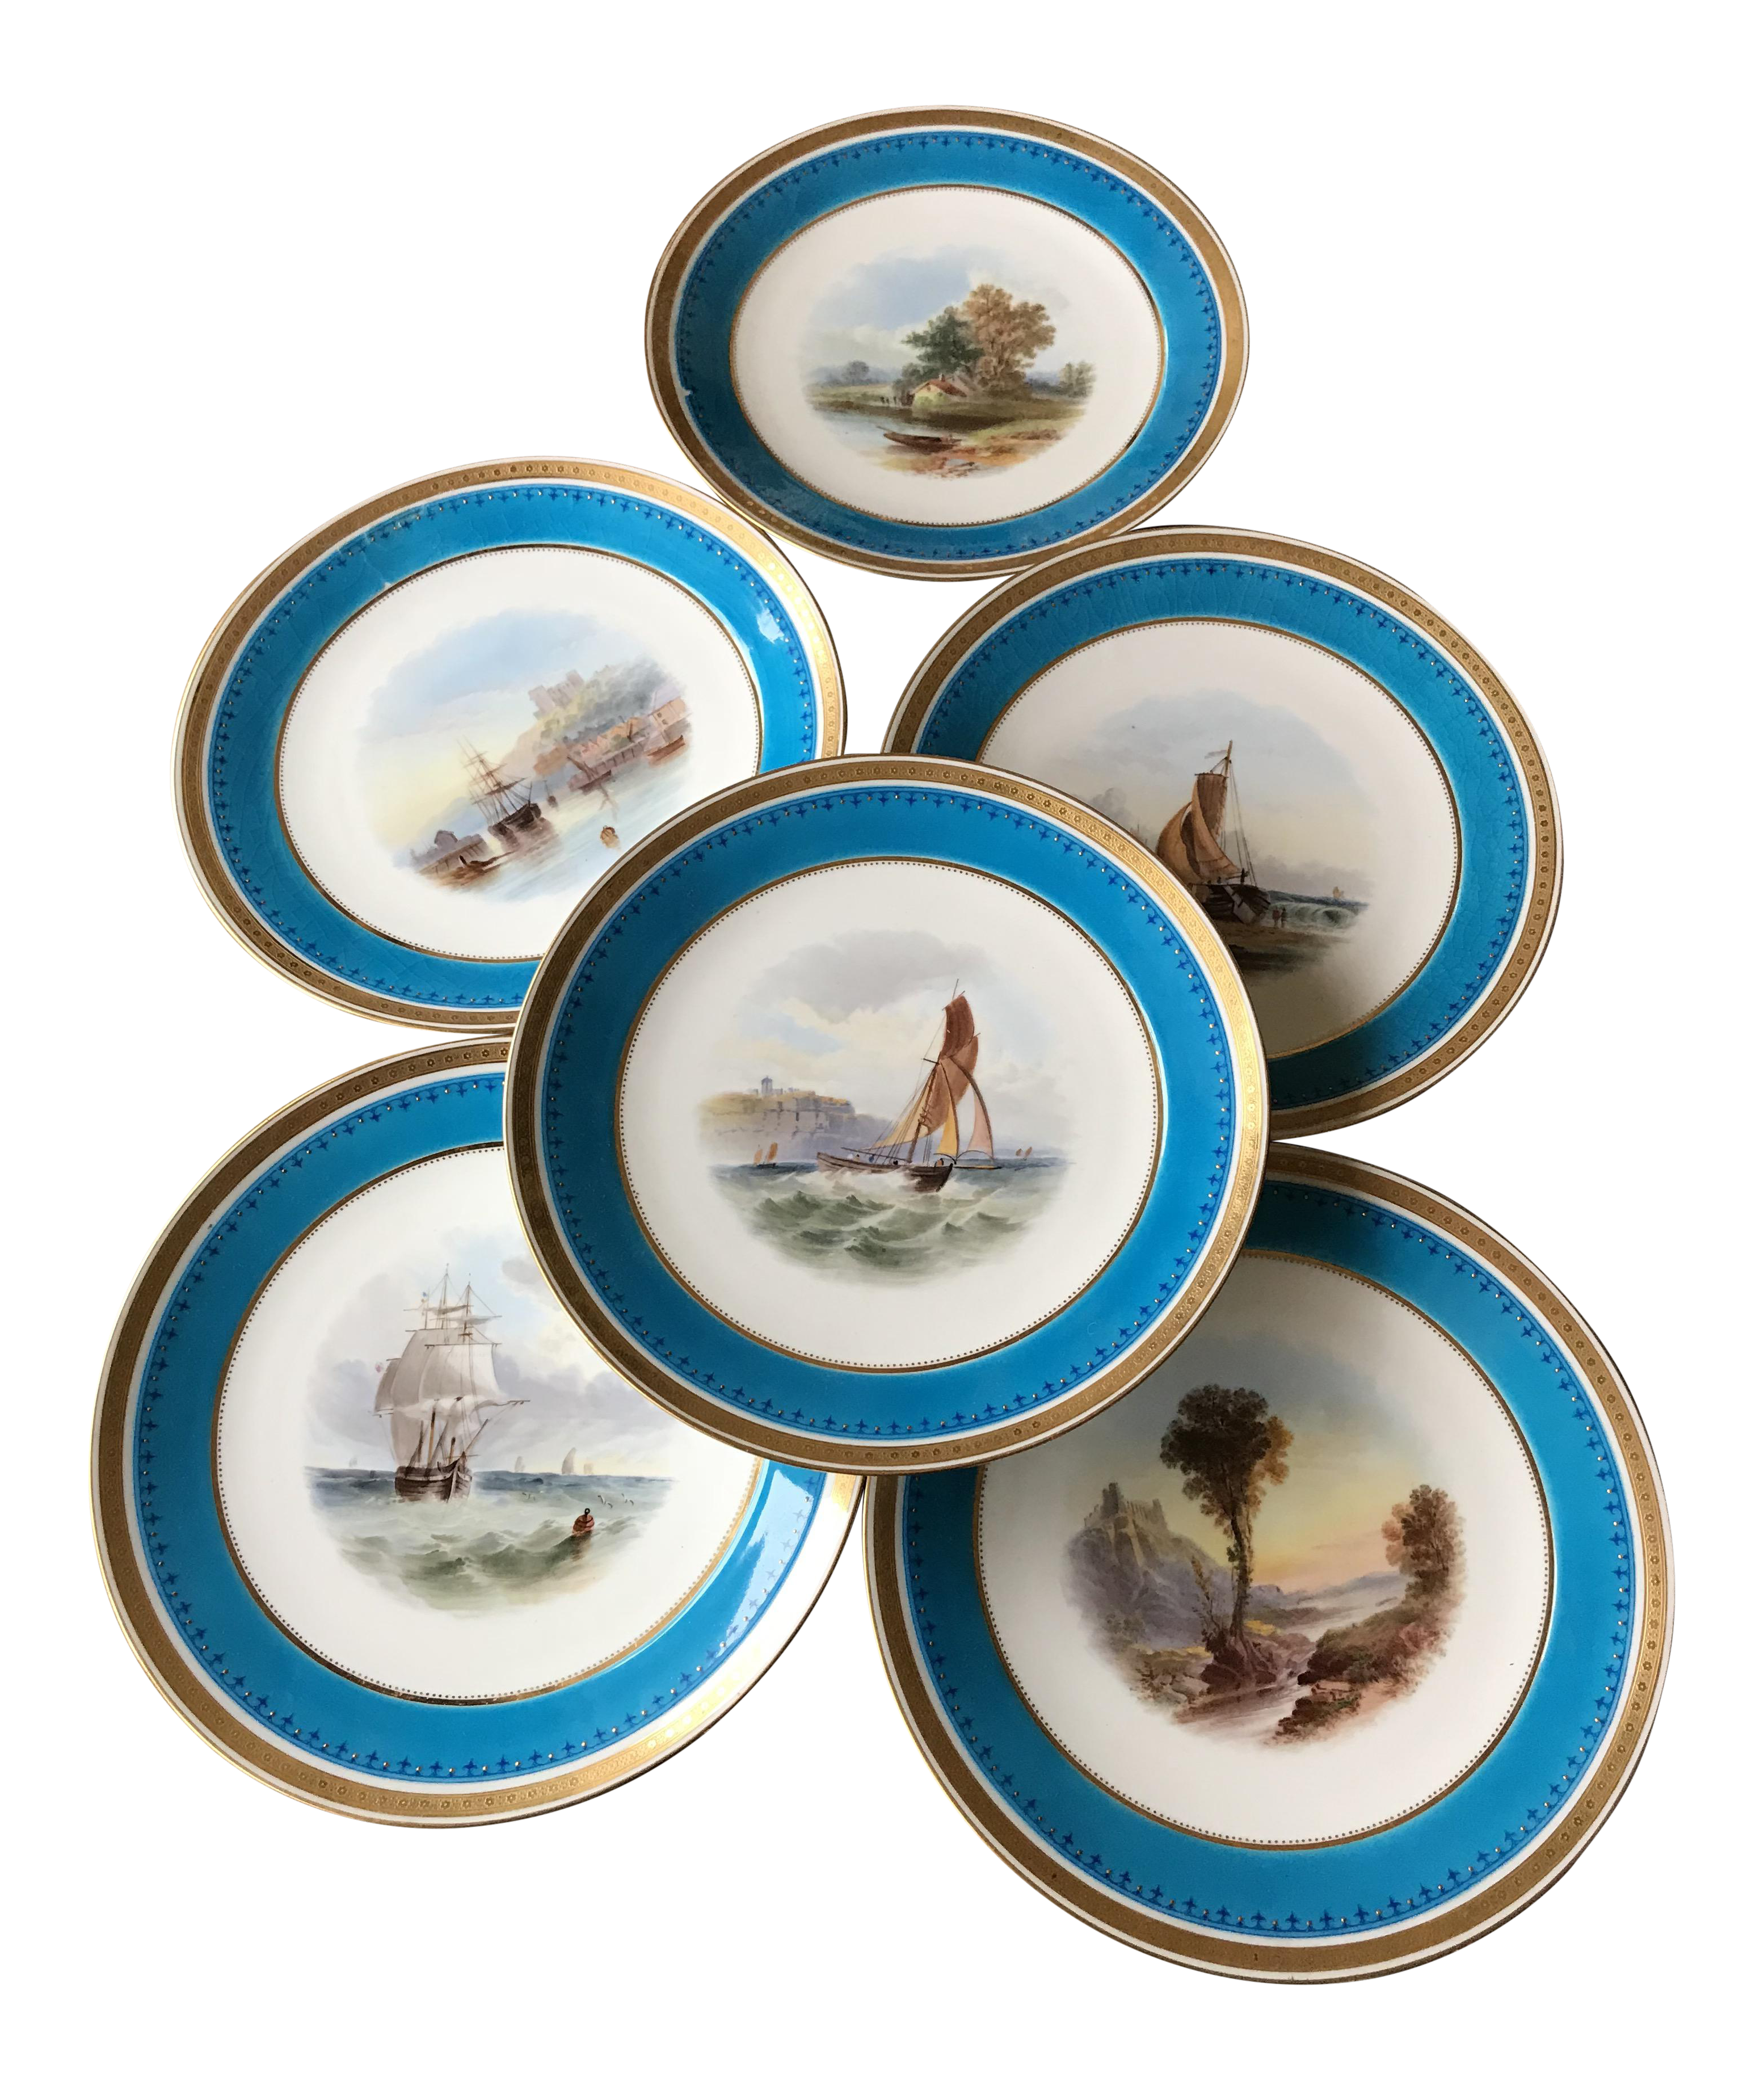 Antique Nautical Minton Dinner Plates - Set of 6  sc 1 st  Chairish & Antique Nautical Minton Dinner Plates - Set of 6 | Chairish